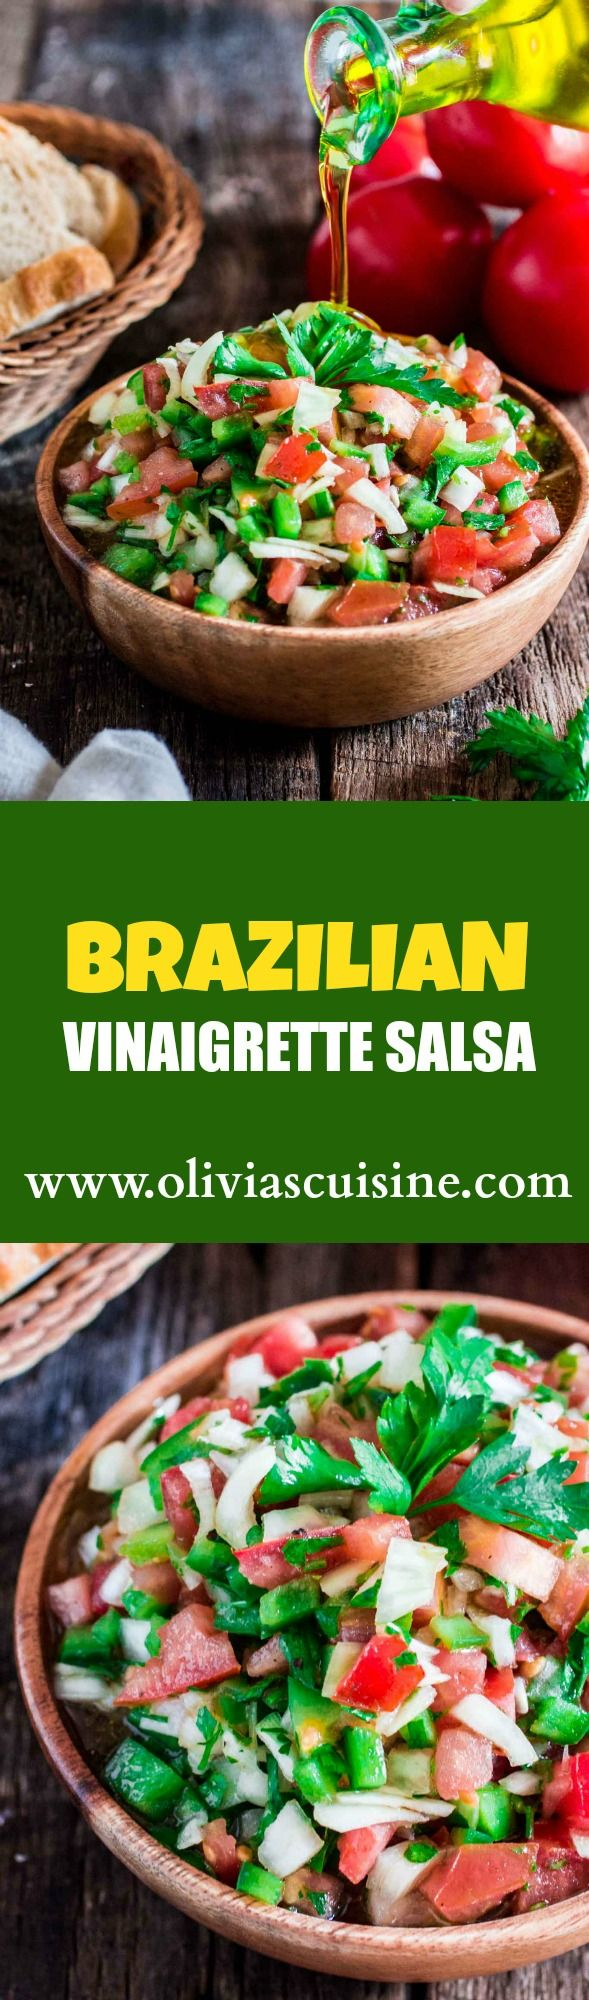 "Brazilian Vinaigrette Salsa | www.oliviascuisine.com | If you've been to a Brazilian barbecue, or feijoada restaurant, you know that the ""vinagrete"" is a must! Milder than the Mexican version, we make our salsa with tomatoes, onions, bell peppers (depending on the region), Vinager and oilve oil. It goest great with any grilled meat, chicken, fish or just with some crunchy bread!"